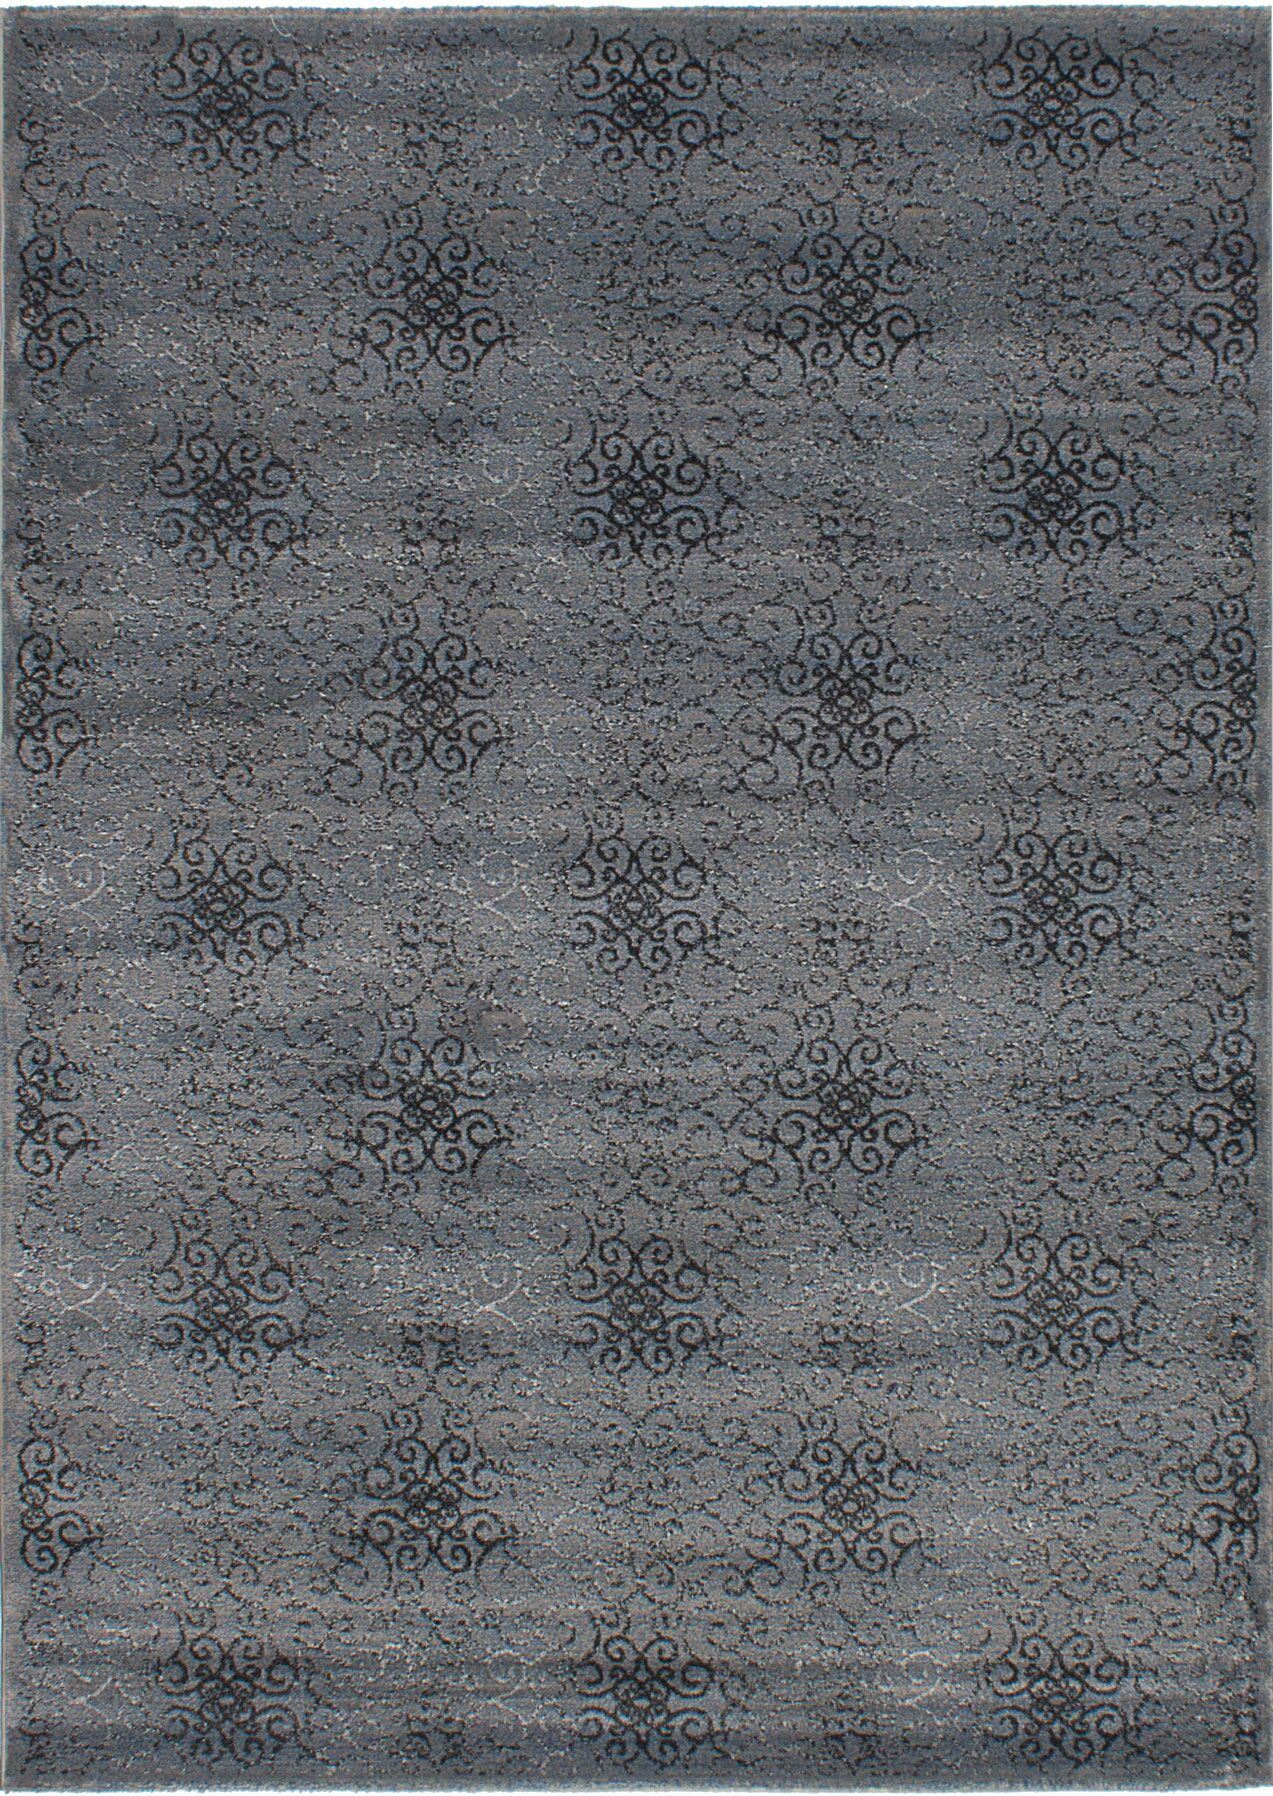 Mccreary Gray Area Rug